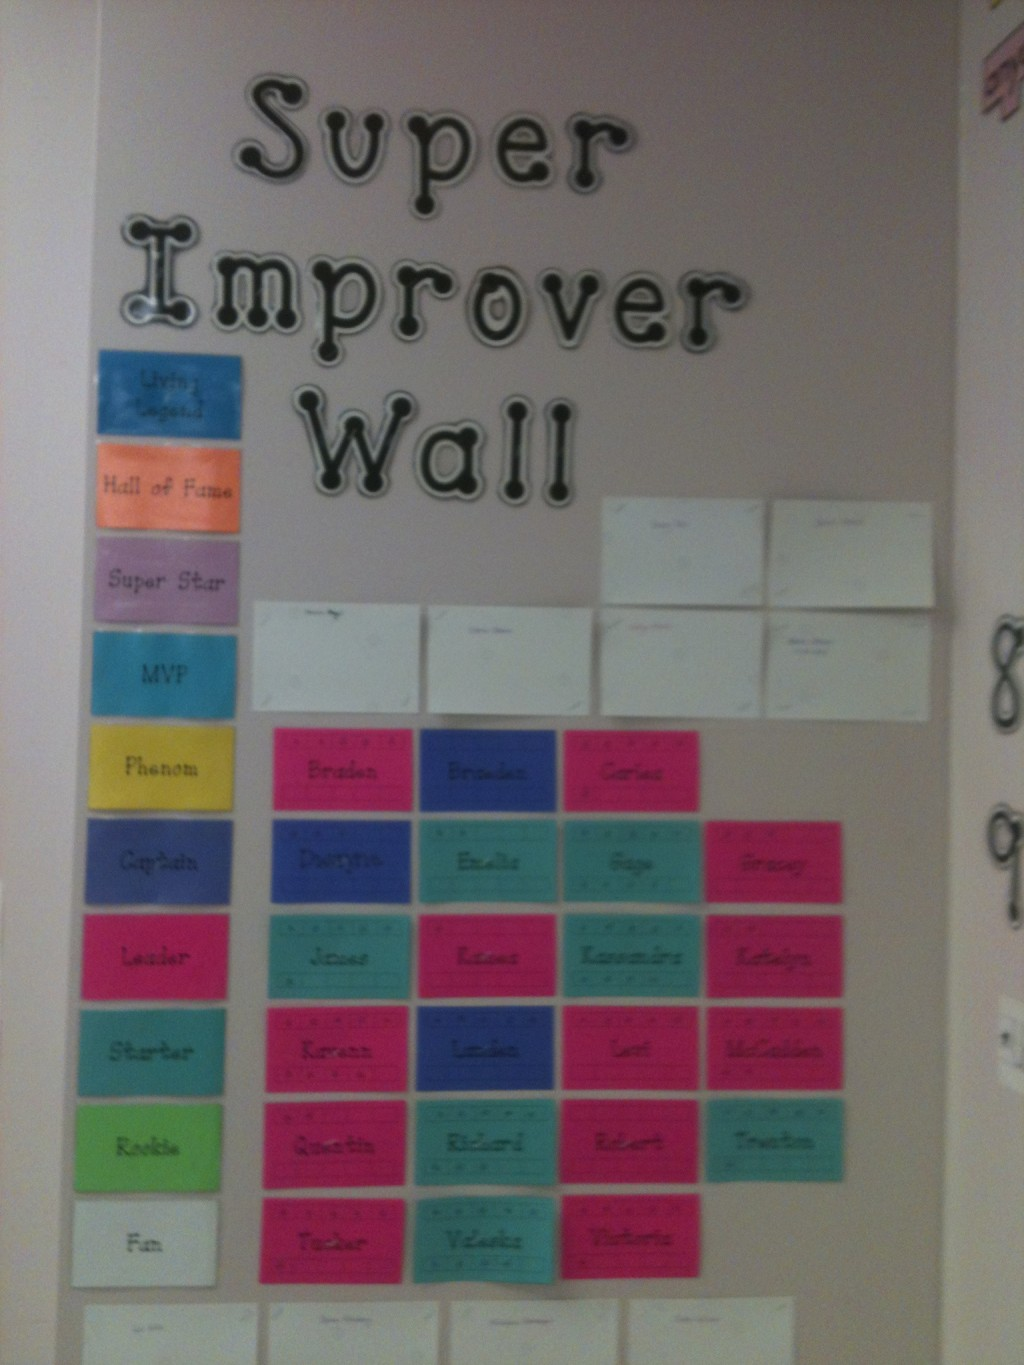 Super Improver Wall  The Reflective Educator